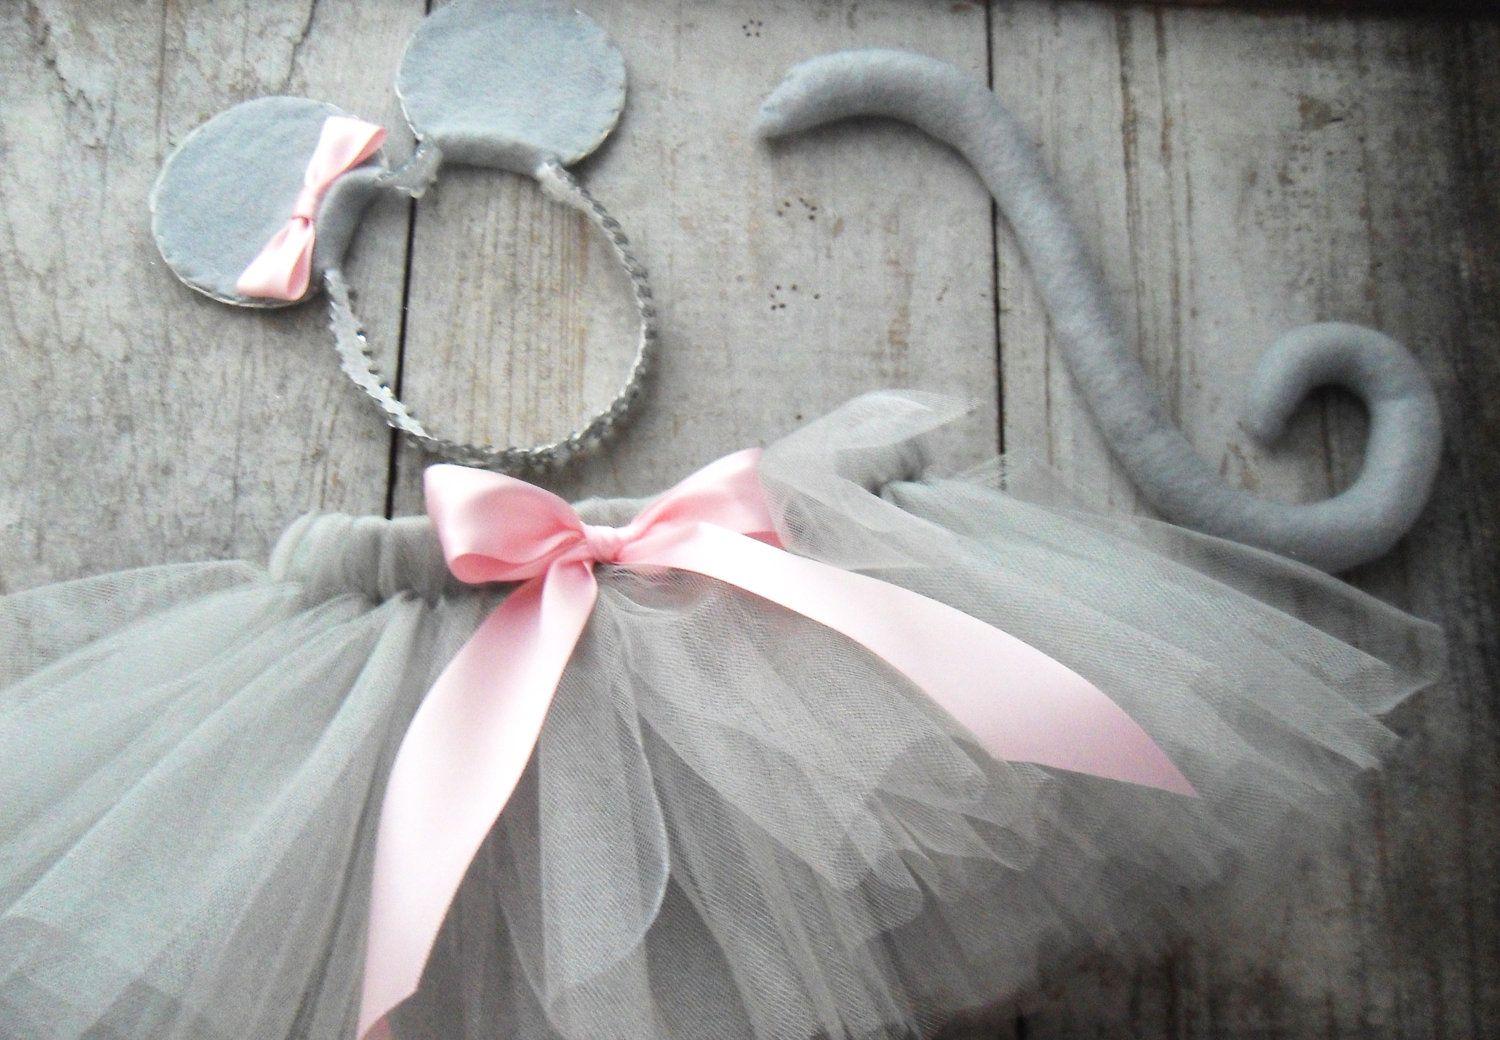 Mouse+Halloween+Costume+Child+Size+by+LittleMissBettyLou+on+Etsy+$46.00 & Mouse+Halloween+Costume+Child+Size+by+LittleMissBettyLou+on+Etsy+$ ...